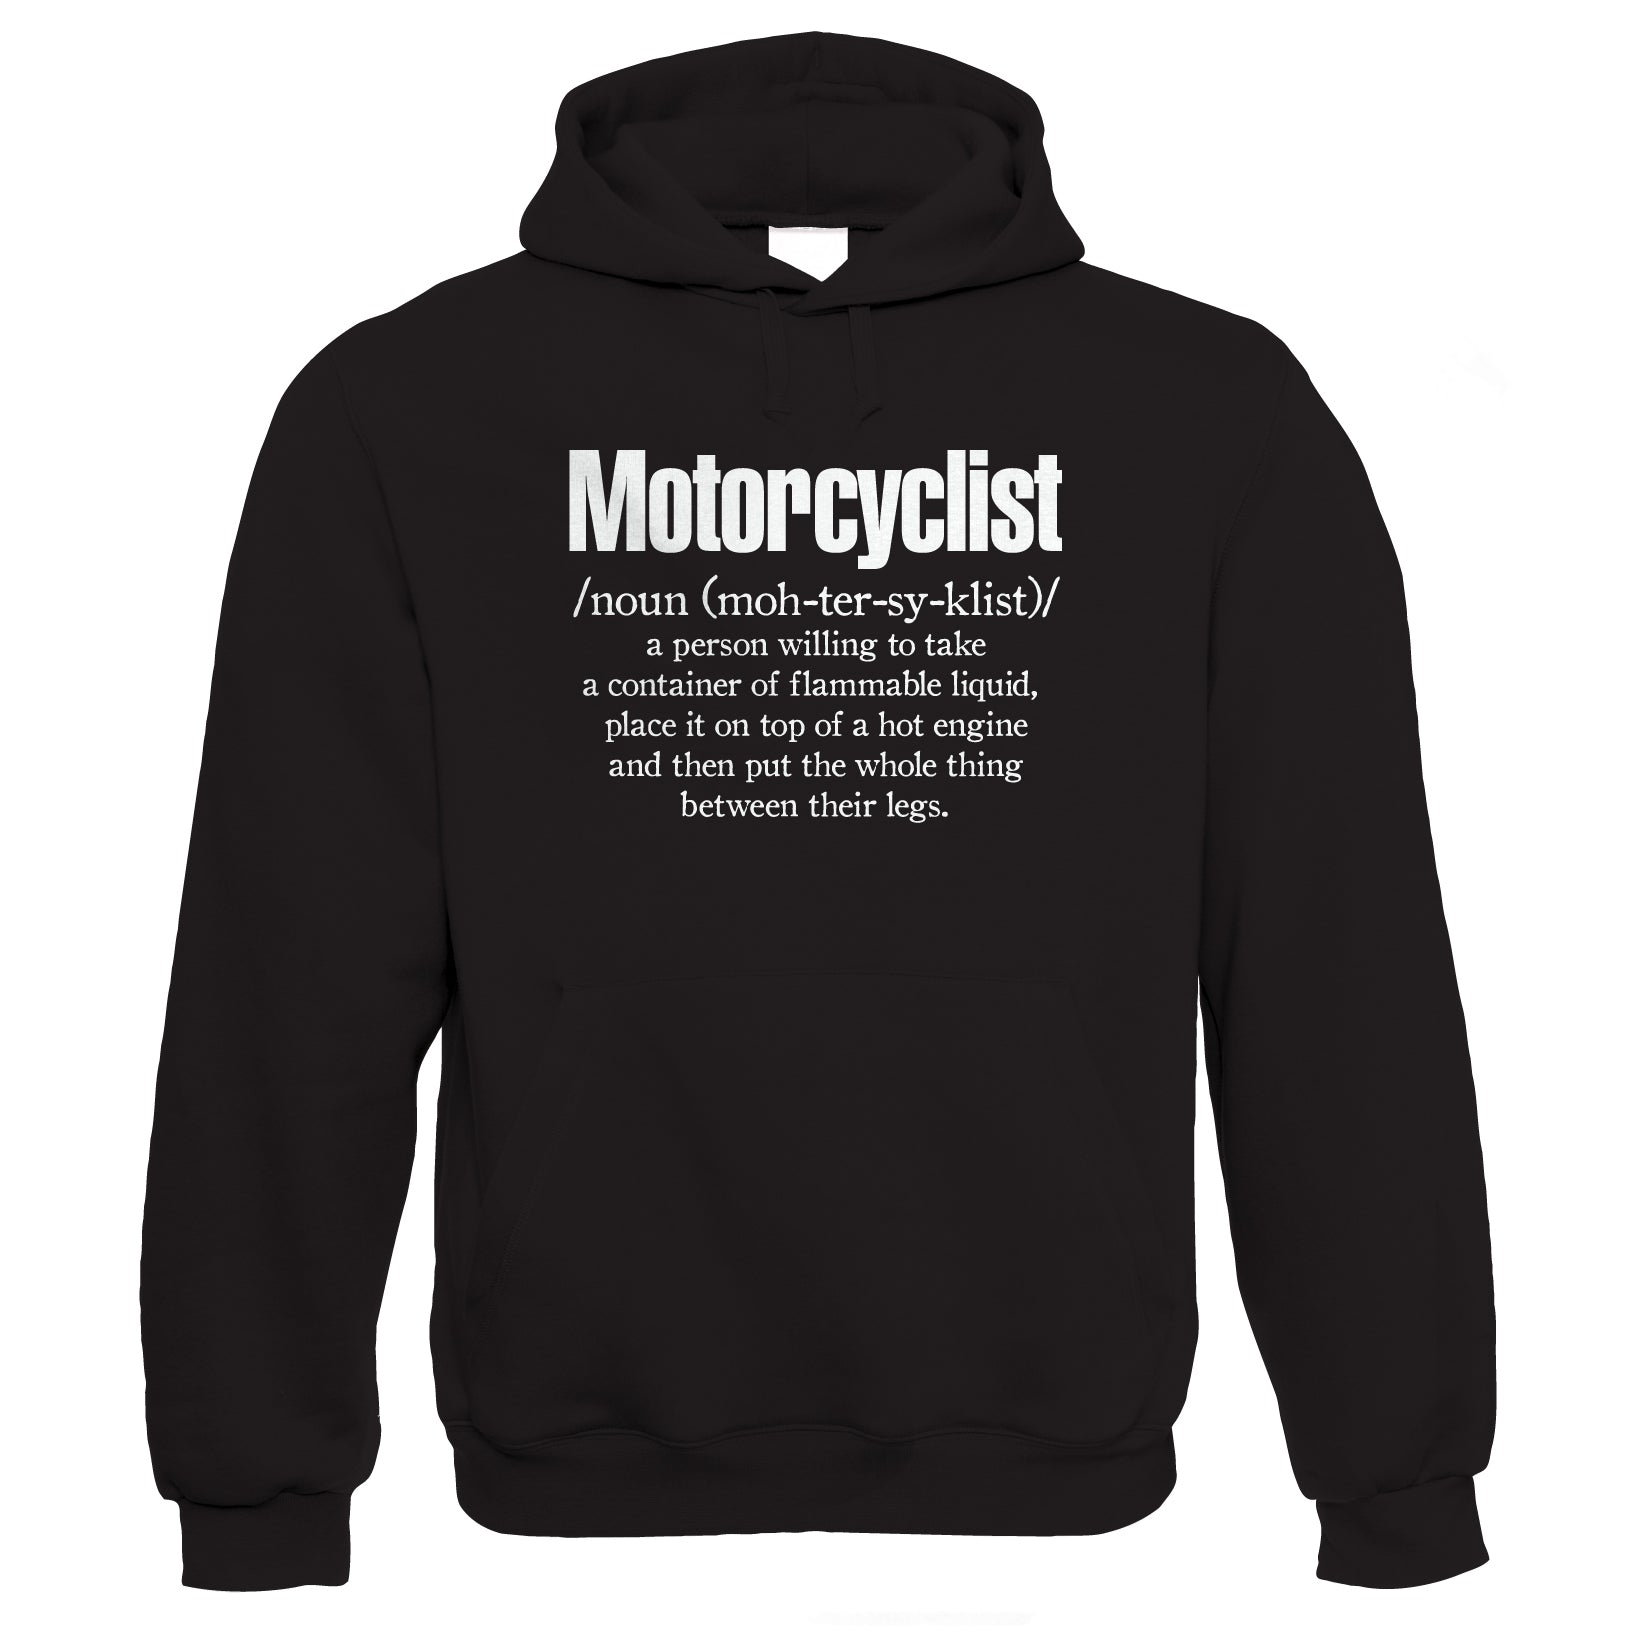 Motorcyclist Definition, Mens Funny Biker Hoodie | Motorbike Enthusiast Motorcycle Club Chopper Cafe Racer Superbike Gentleman Biker | Cool Birthday Christmas Gift Present Him Dad Husband Son